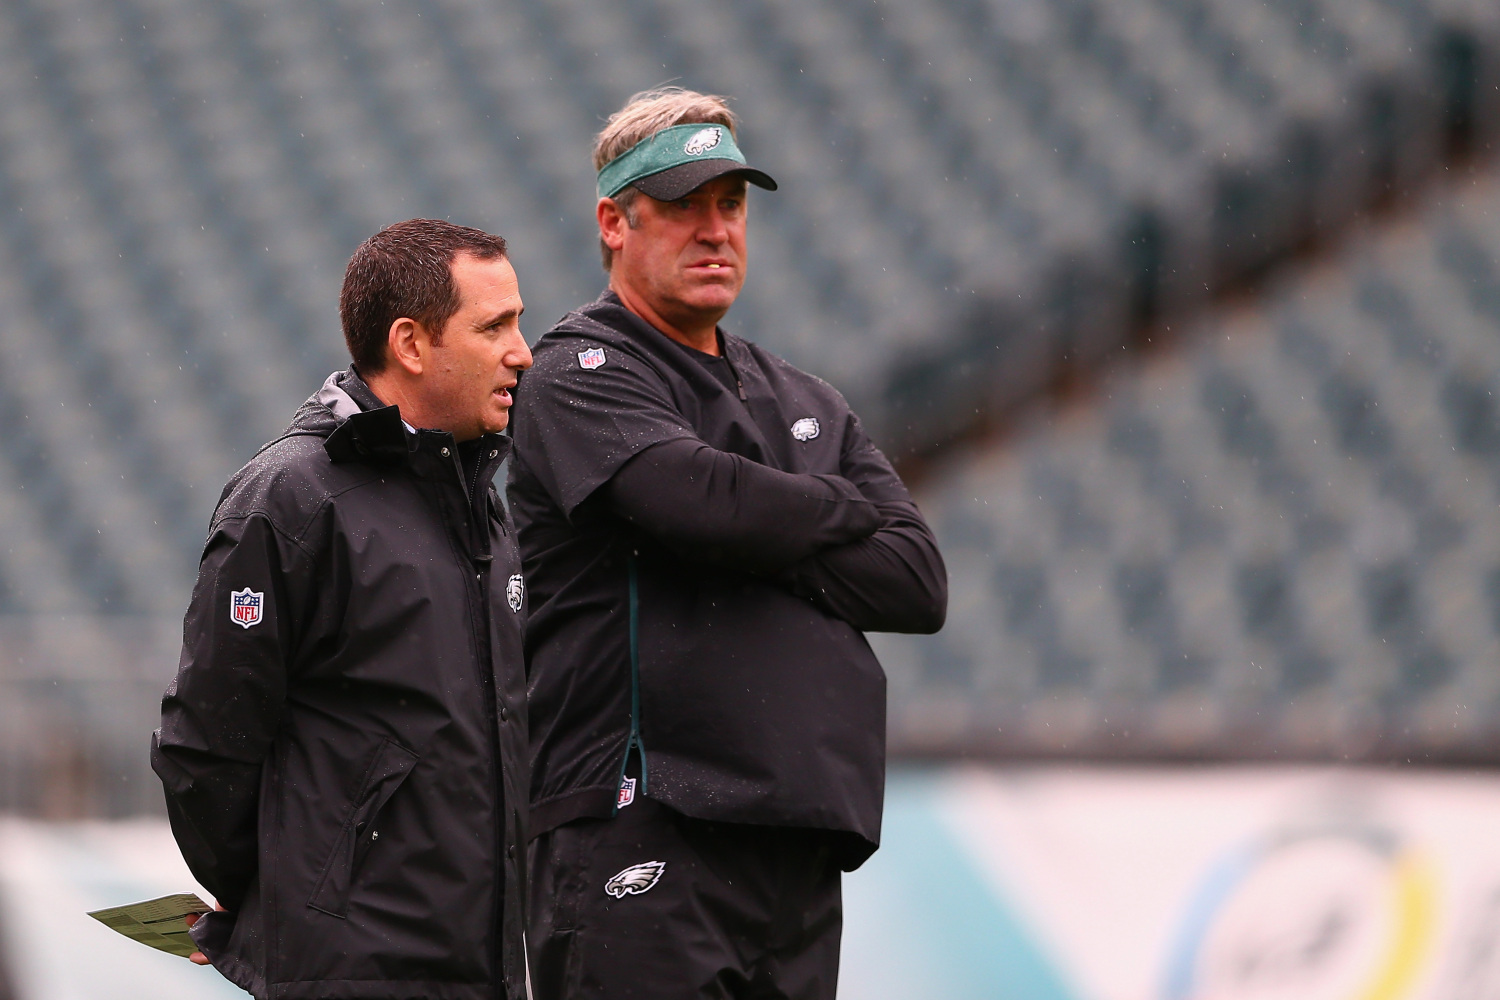 SOURCE SPORTS: Philadelphia Eagles Head Coach Doug Pederson Tests Positive for COVID-19